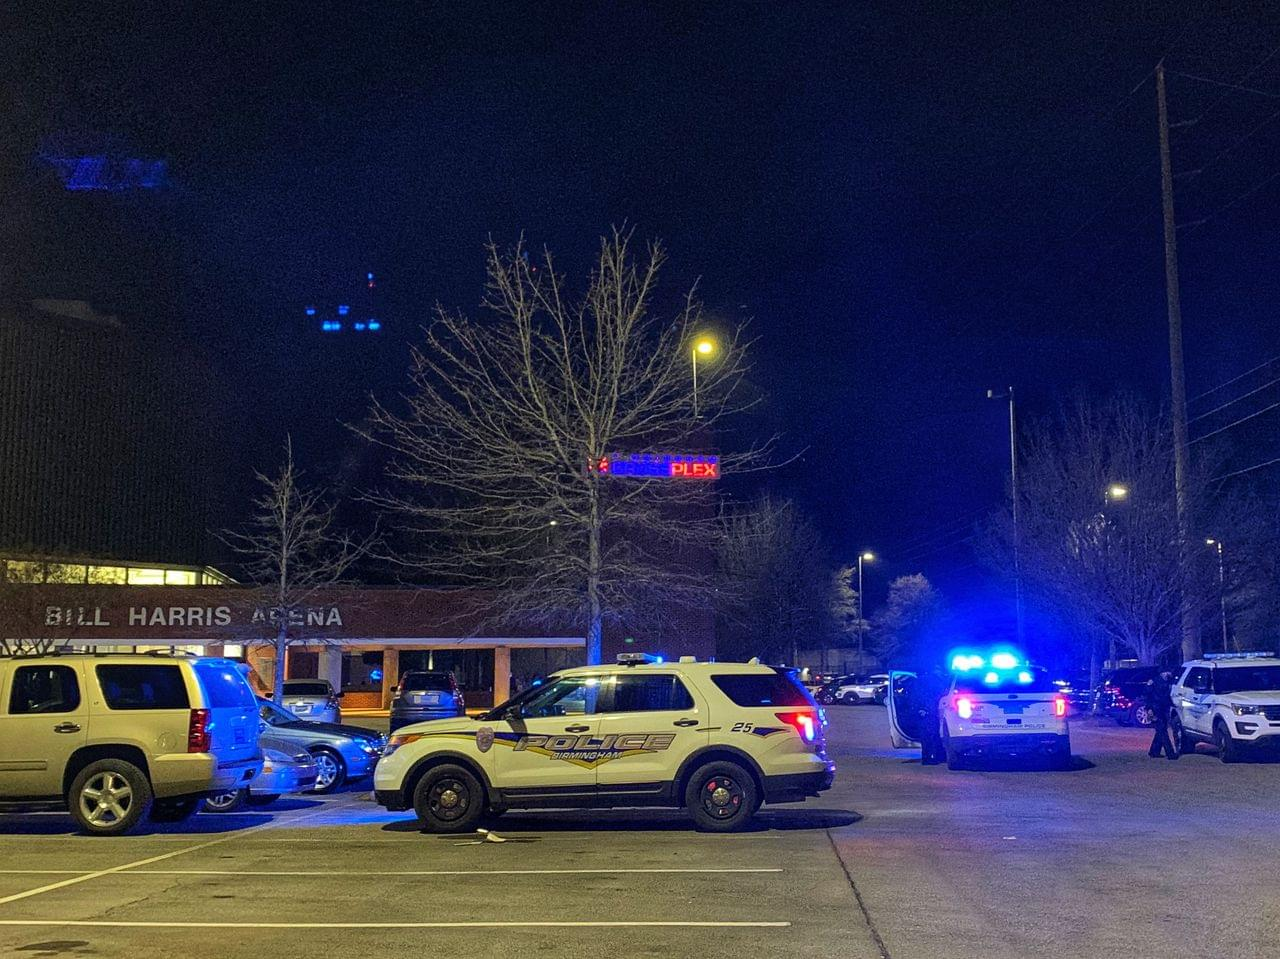 Lil Baby concert shut down after shots are fired, sending one person to the hospital [VIDEO]